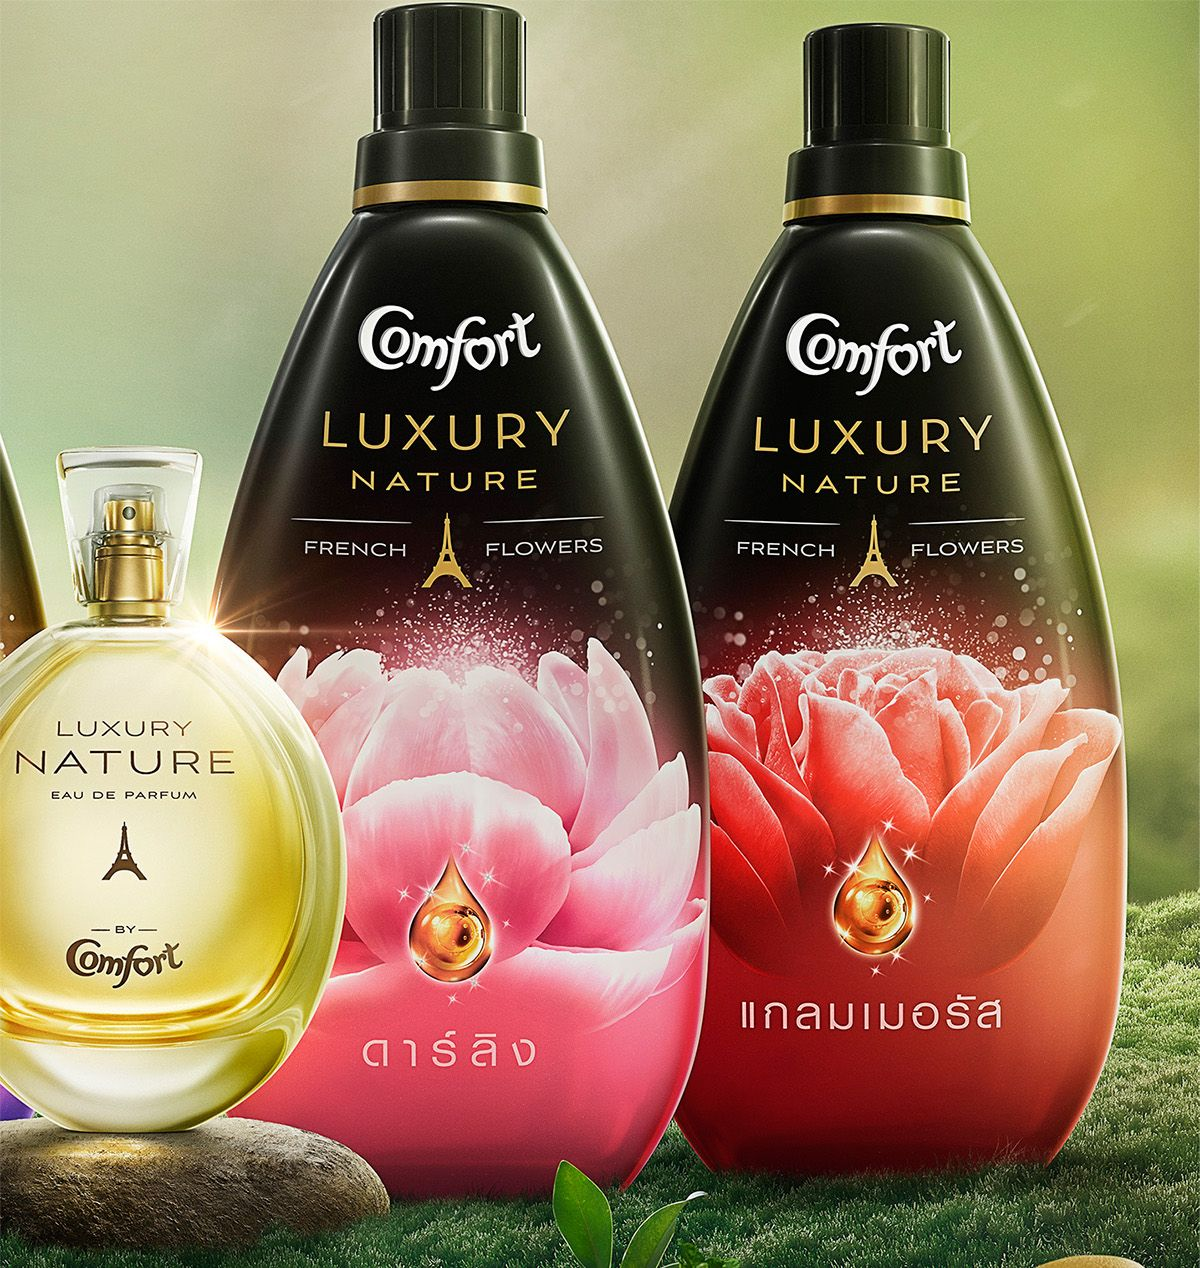 Comfort Thailand On Behance Packaging Inspiration Packaging